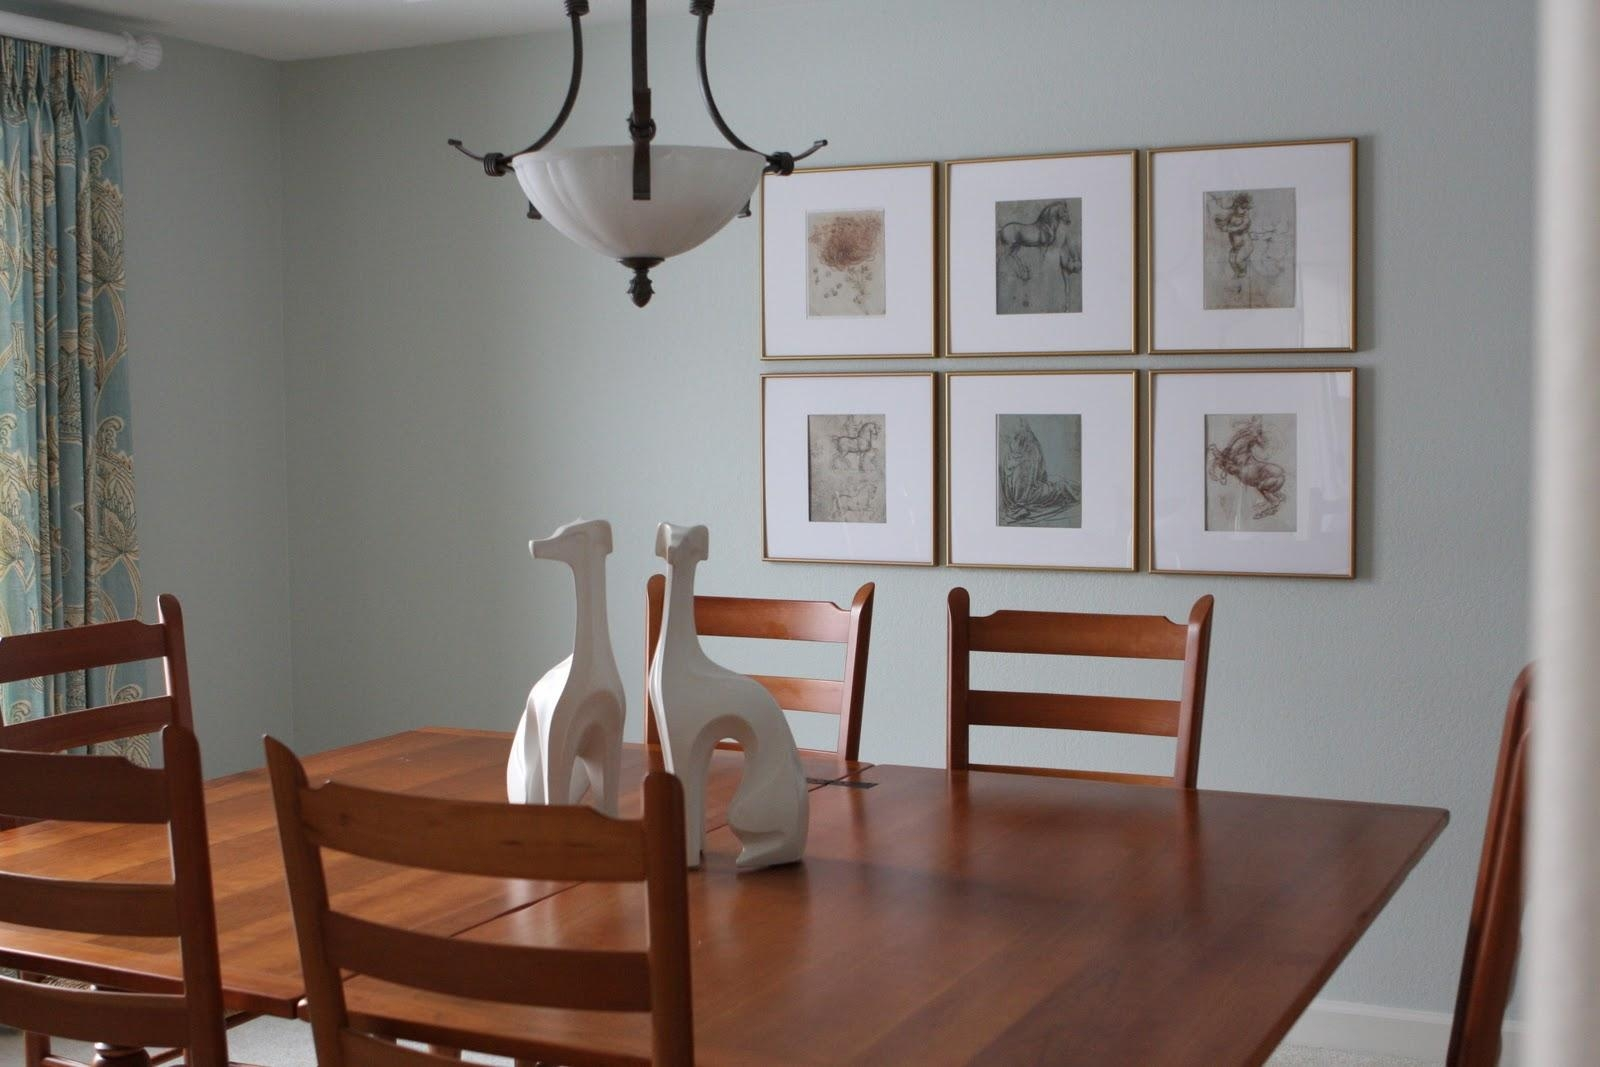 Dining Room Wall Art – Ideas For Home Interior Decoration Pertaining To Dining Wall Art (Image 15 of 20)